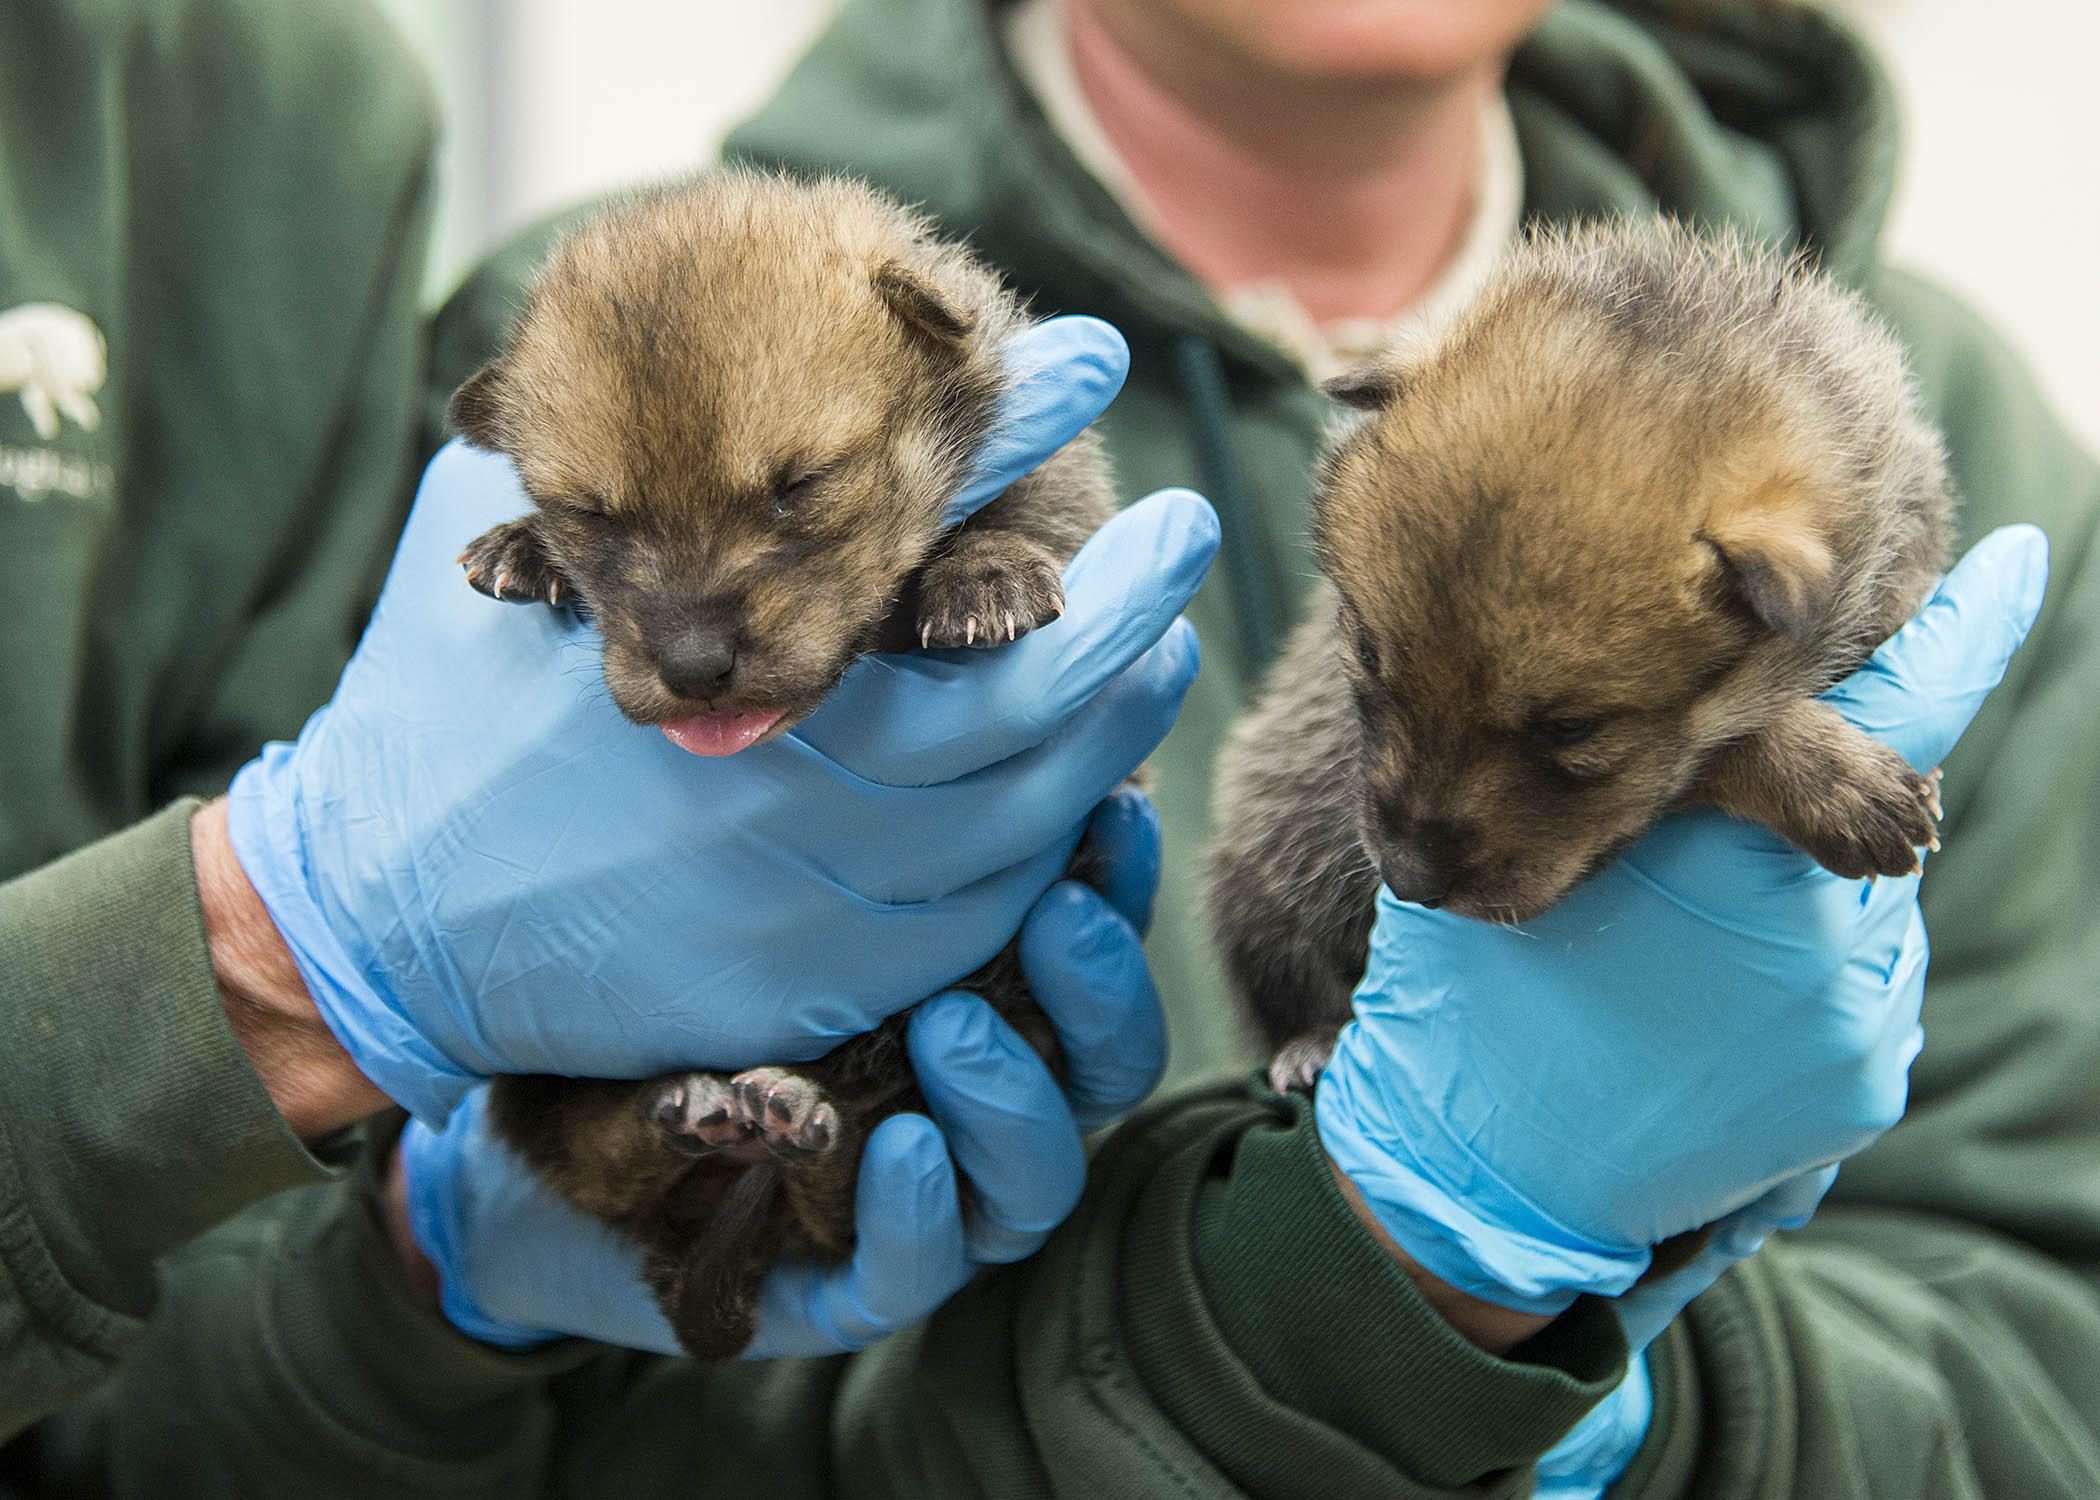 Two wild-born Mexican gray wolf puppies arrived at Brookfield Zoo in May as part of the U.S. Fish & Wildlife Service's recovery program for the species. (Mexican Wolf Interagency Field Team / Chicago Zoological Society)